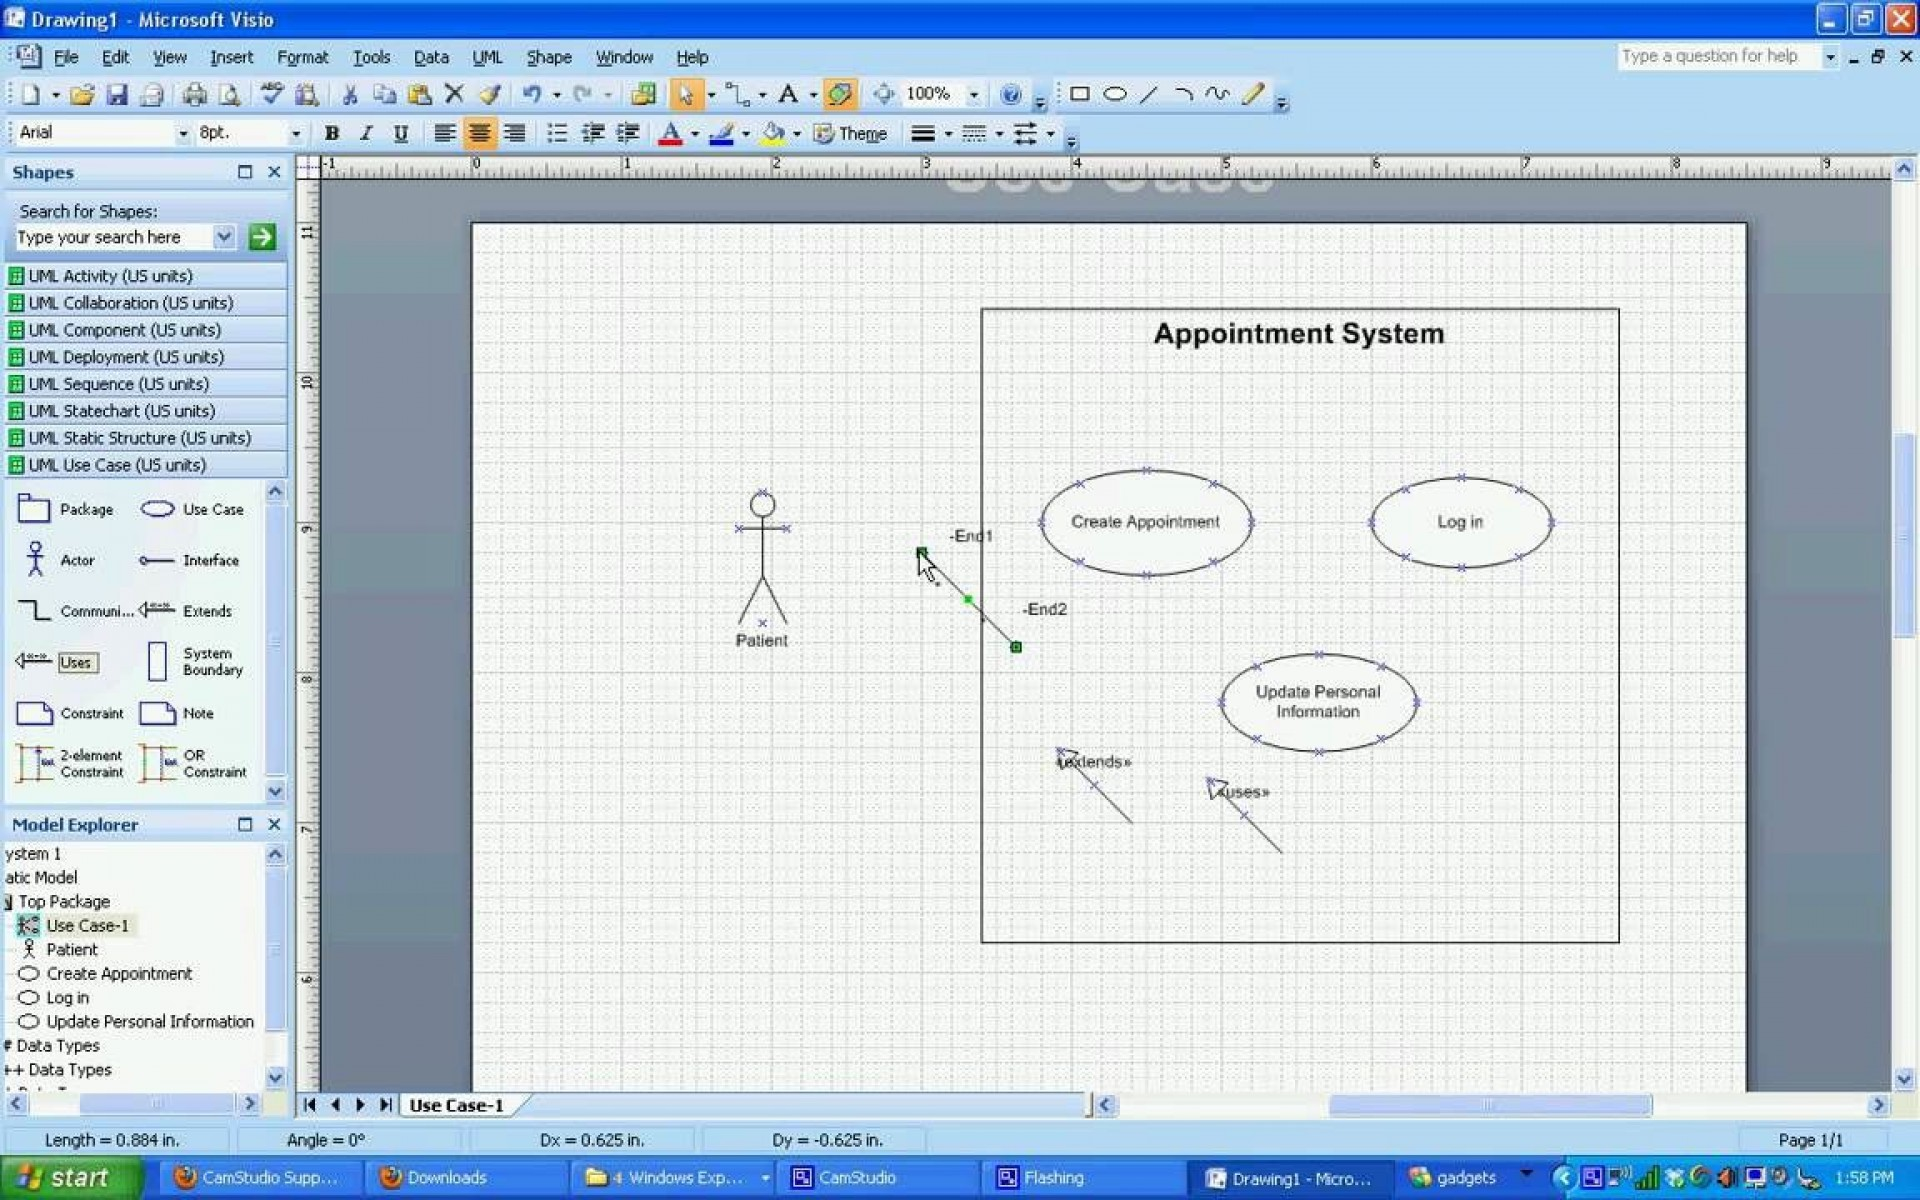 000 Archaicawful Microsoft Word Use Case Diagram Template Sample 1920